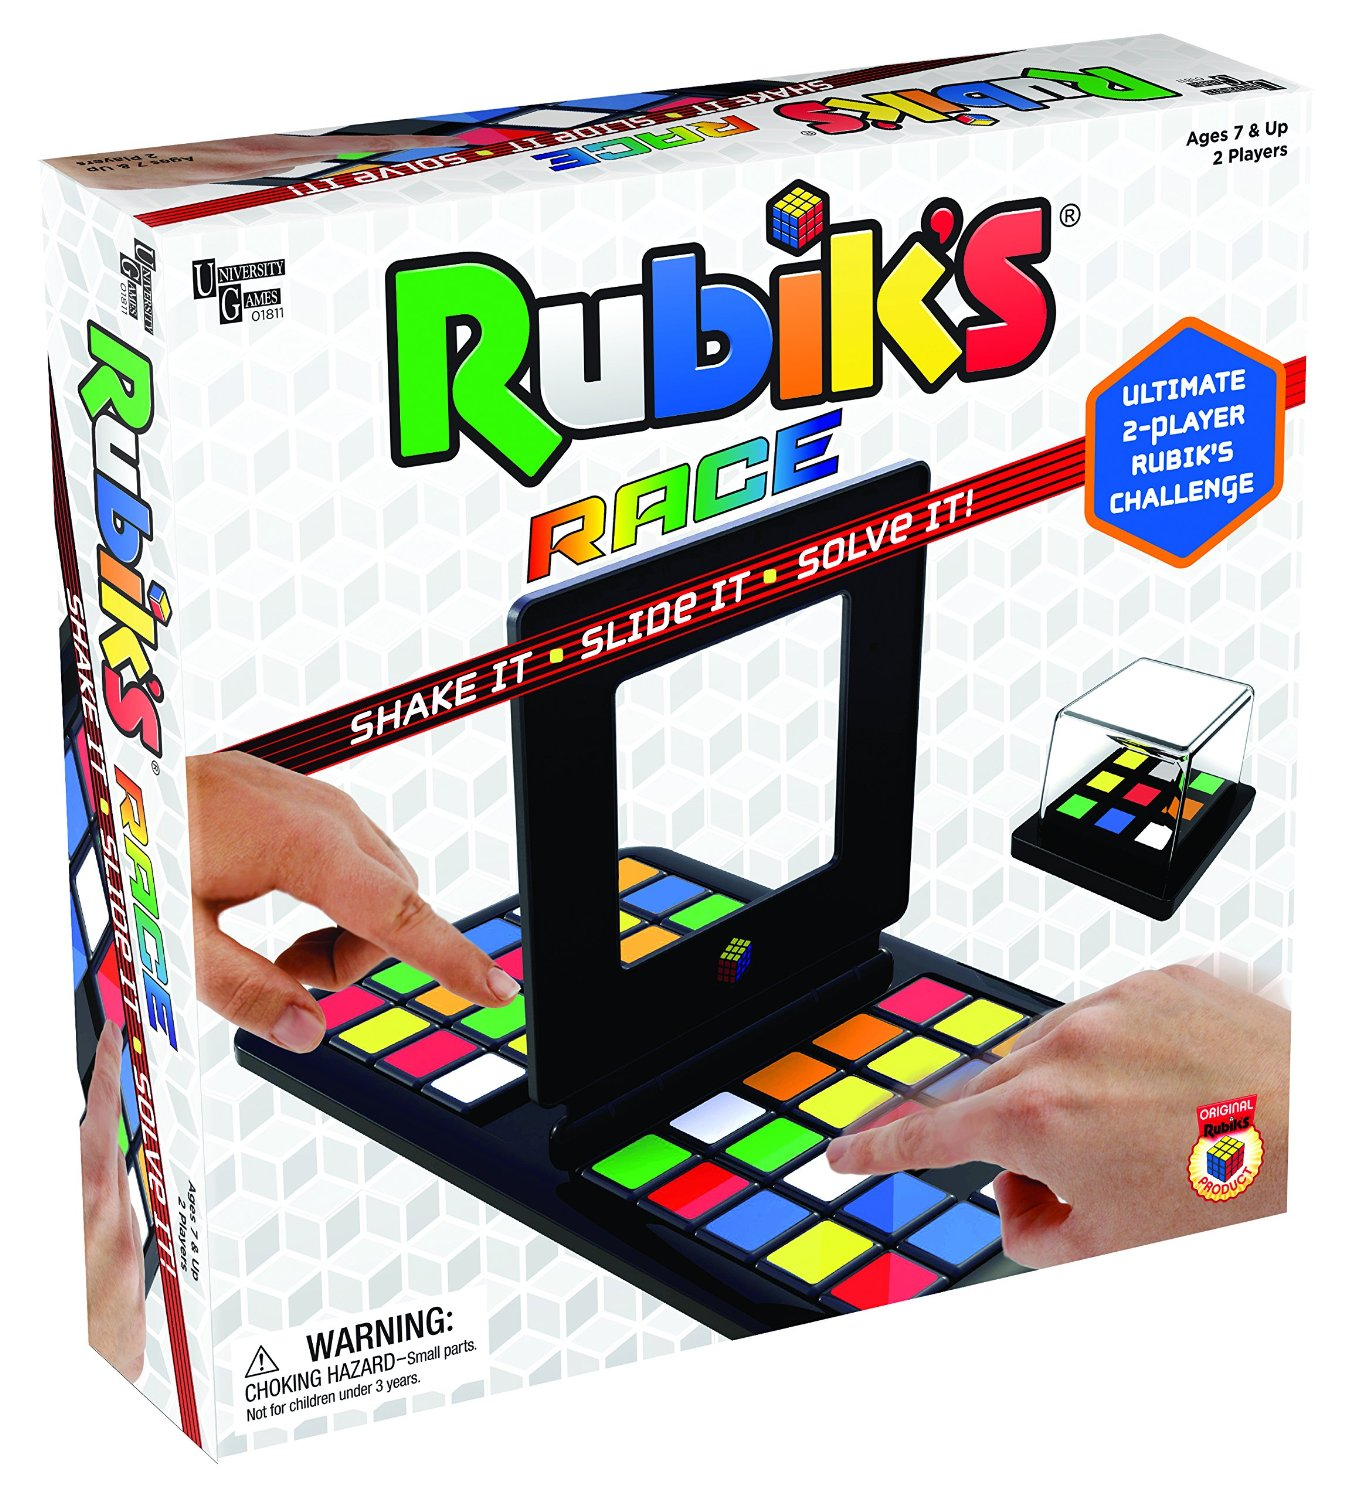 University Games Rubik's Race Game by